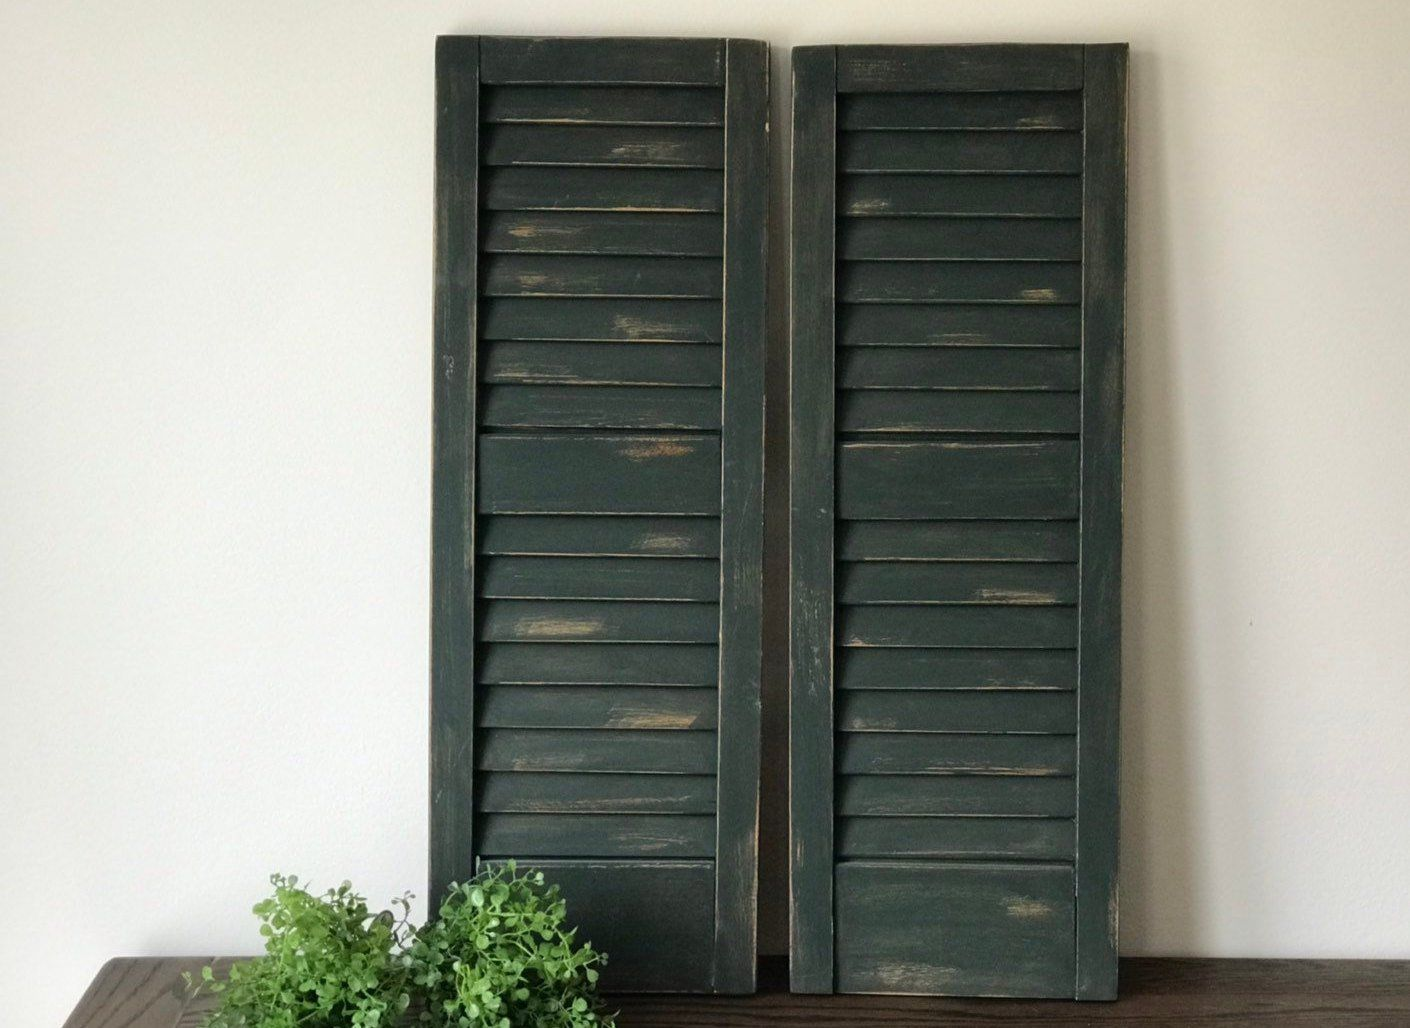 Pair Of Wood Shutters Shutter Wall Decor Farmhouse Sign Wood Black Painted Shabby Chic French Cou Shutter Wall Decor Wood Shutters French Country House